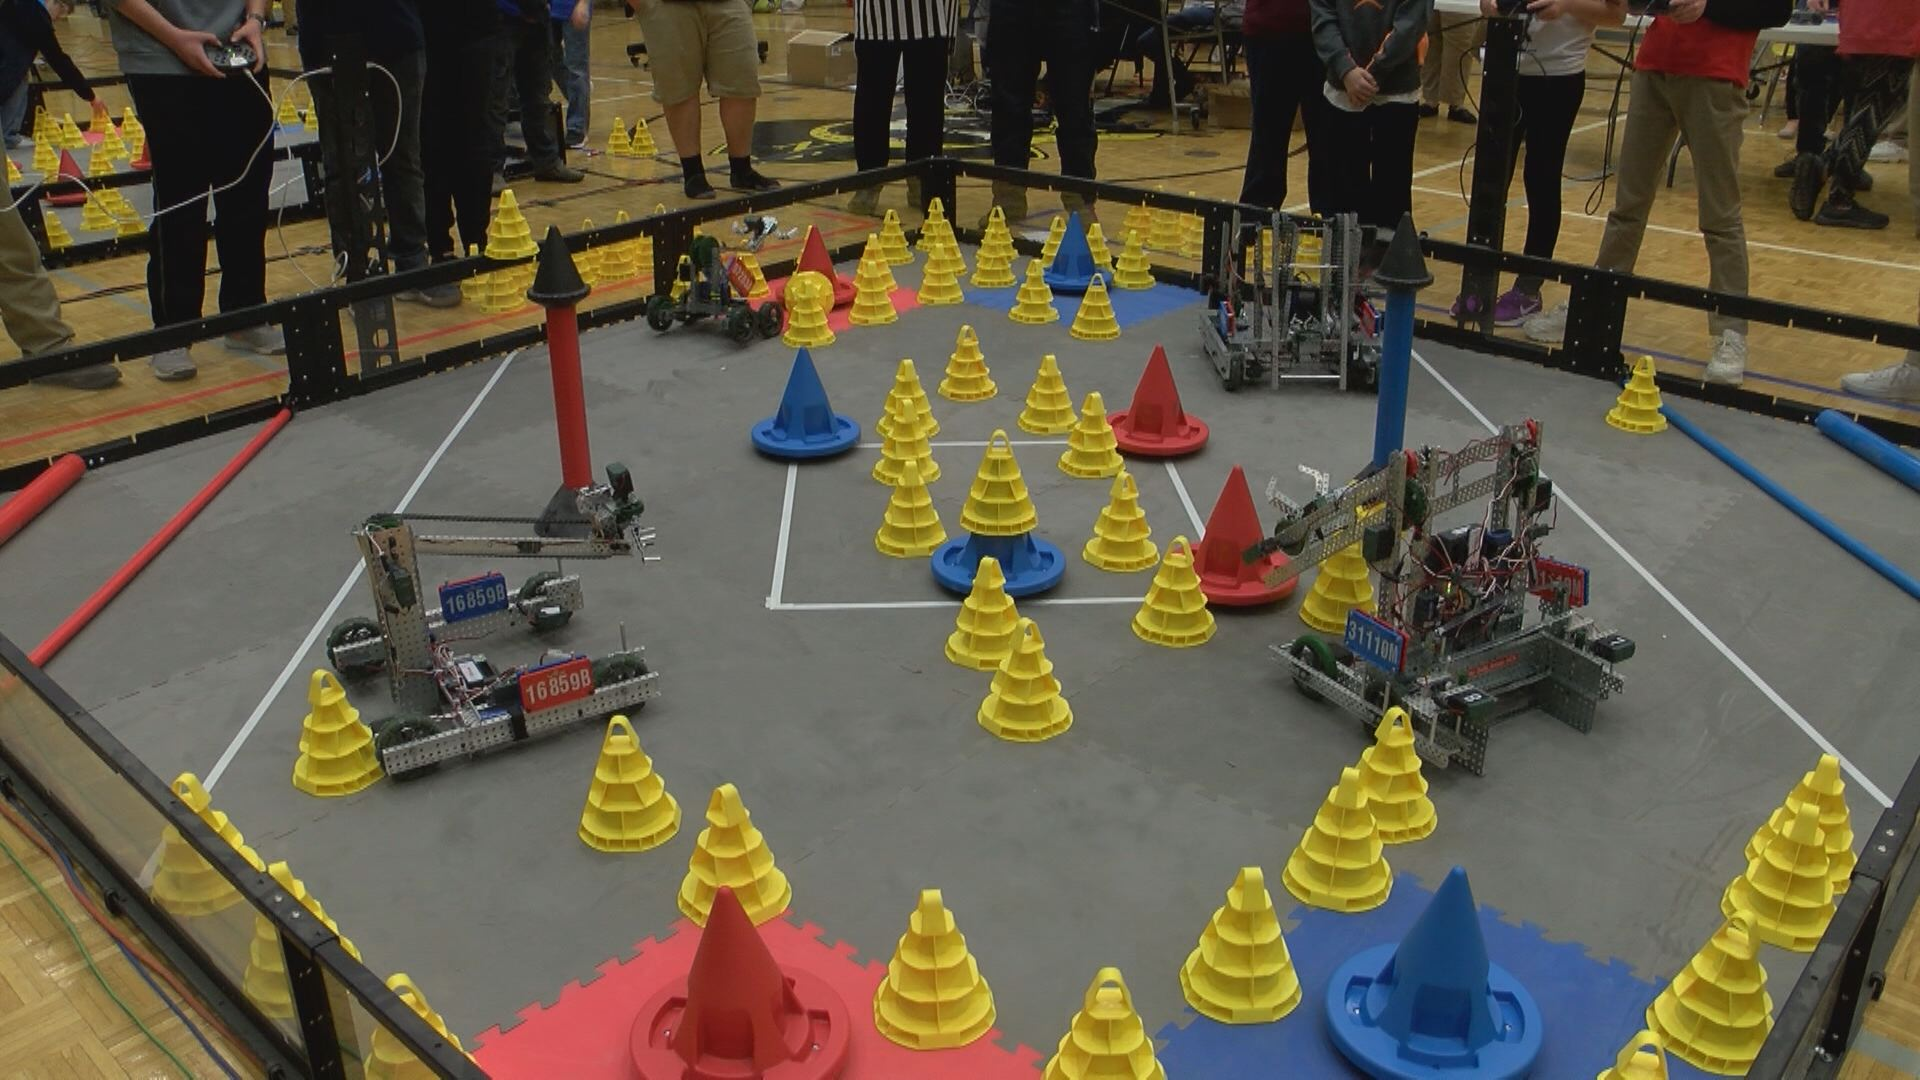 Points are scored by stacking yellow cones on top of the red and blue goals, or by moving the shorter mobile goals into the scoring zones at the corners of the match area. (Thomas Gray/WCYB)